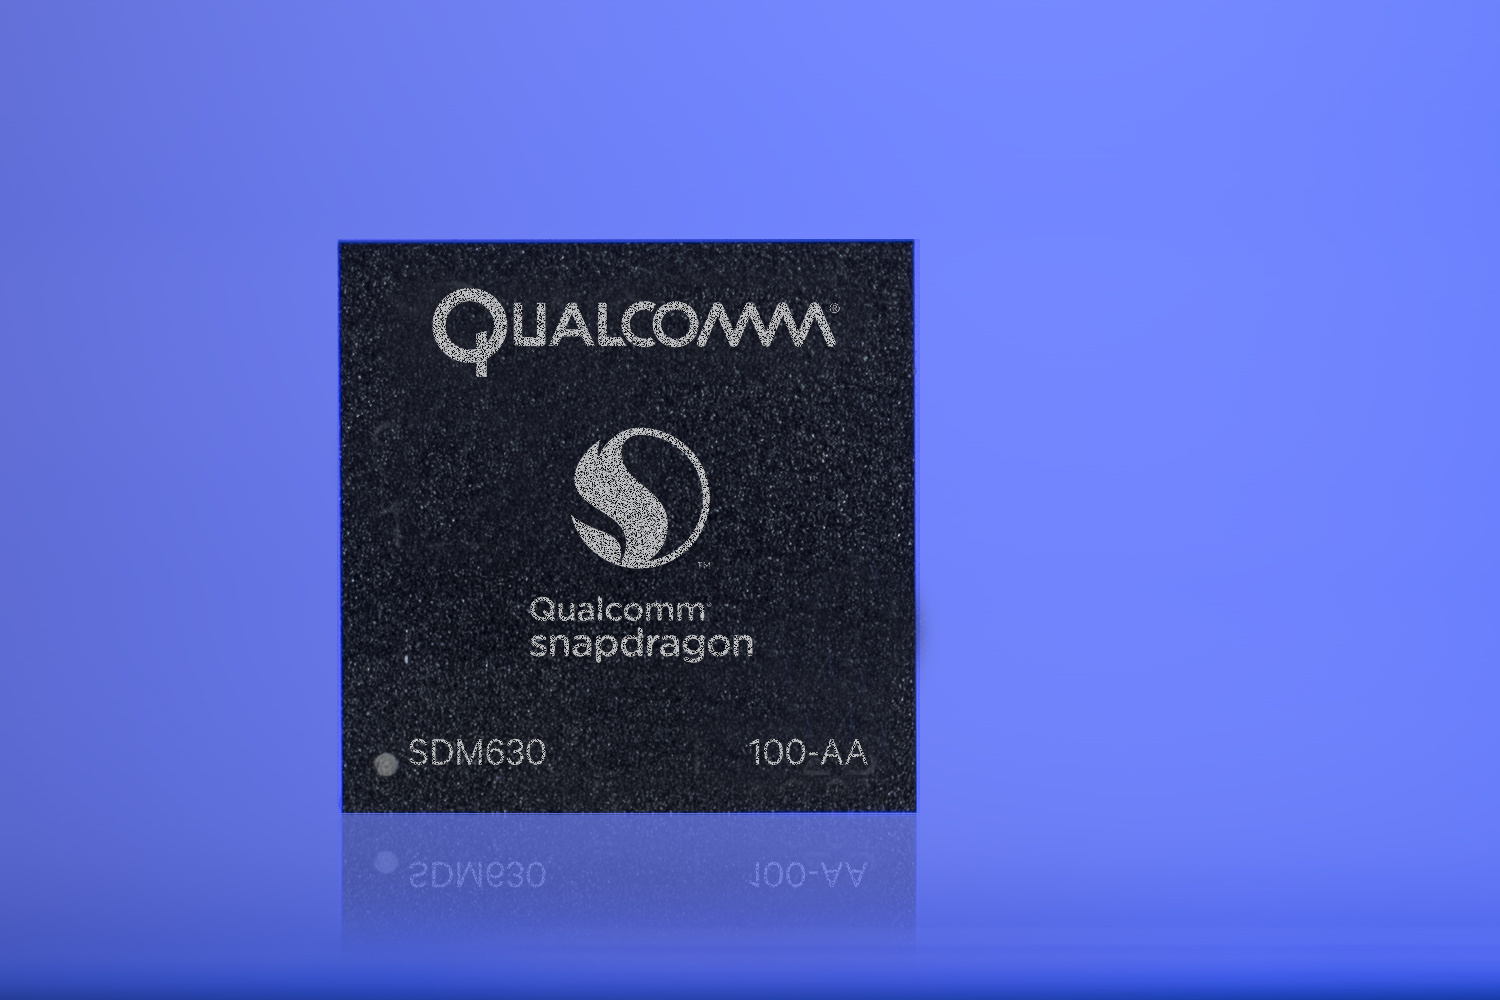 Qualcomm Snapdragon 630 Mobile Platform